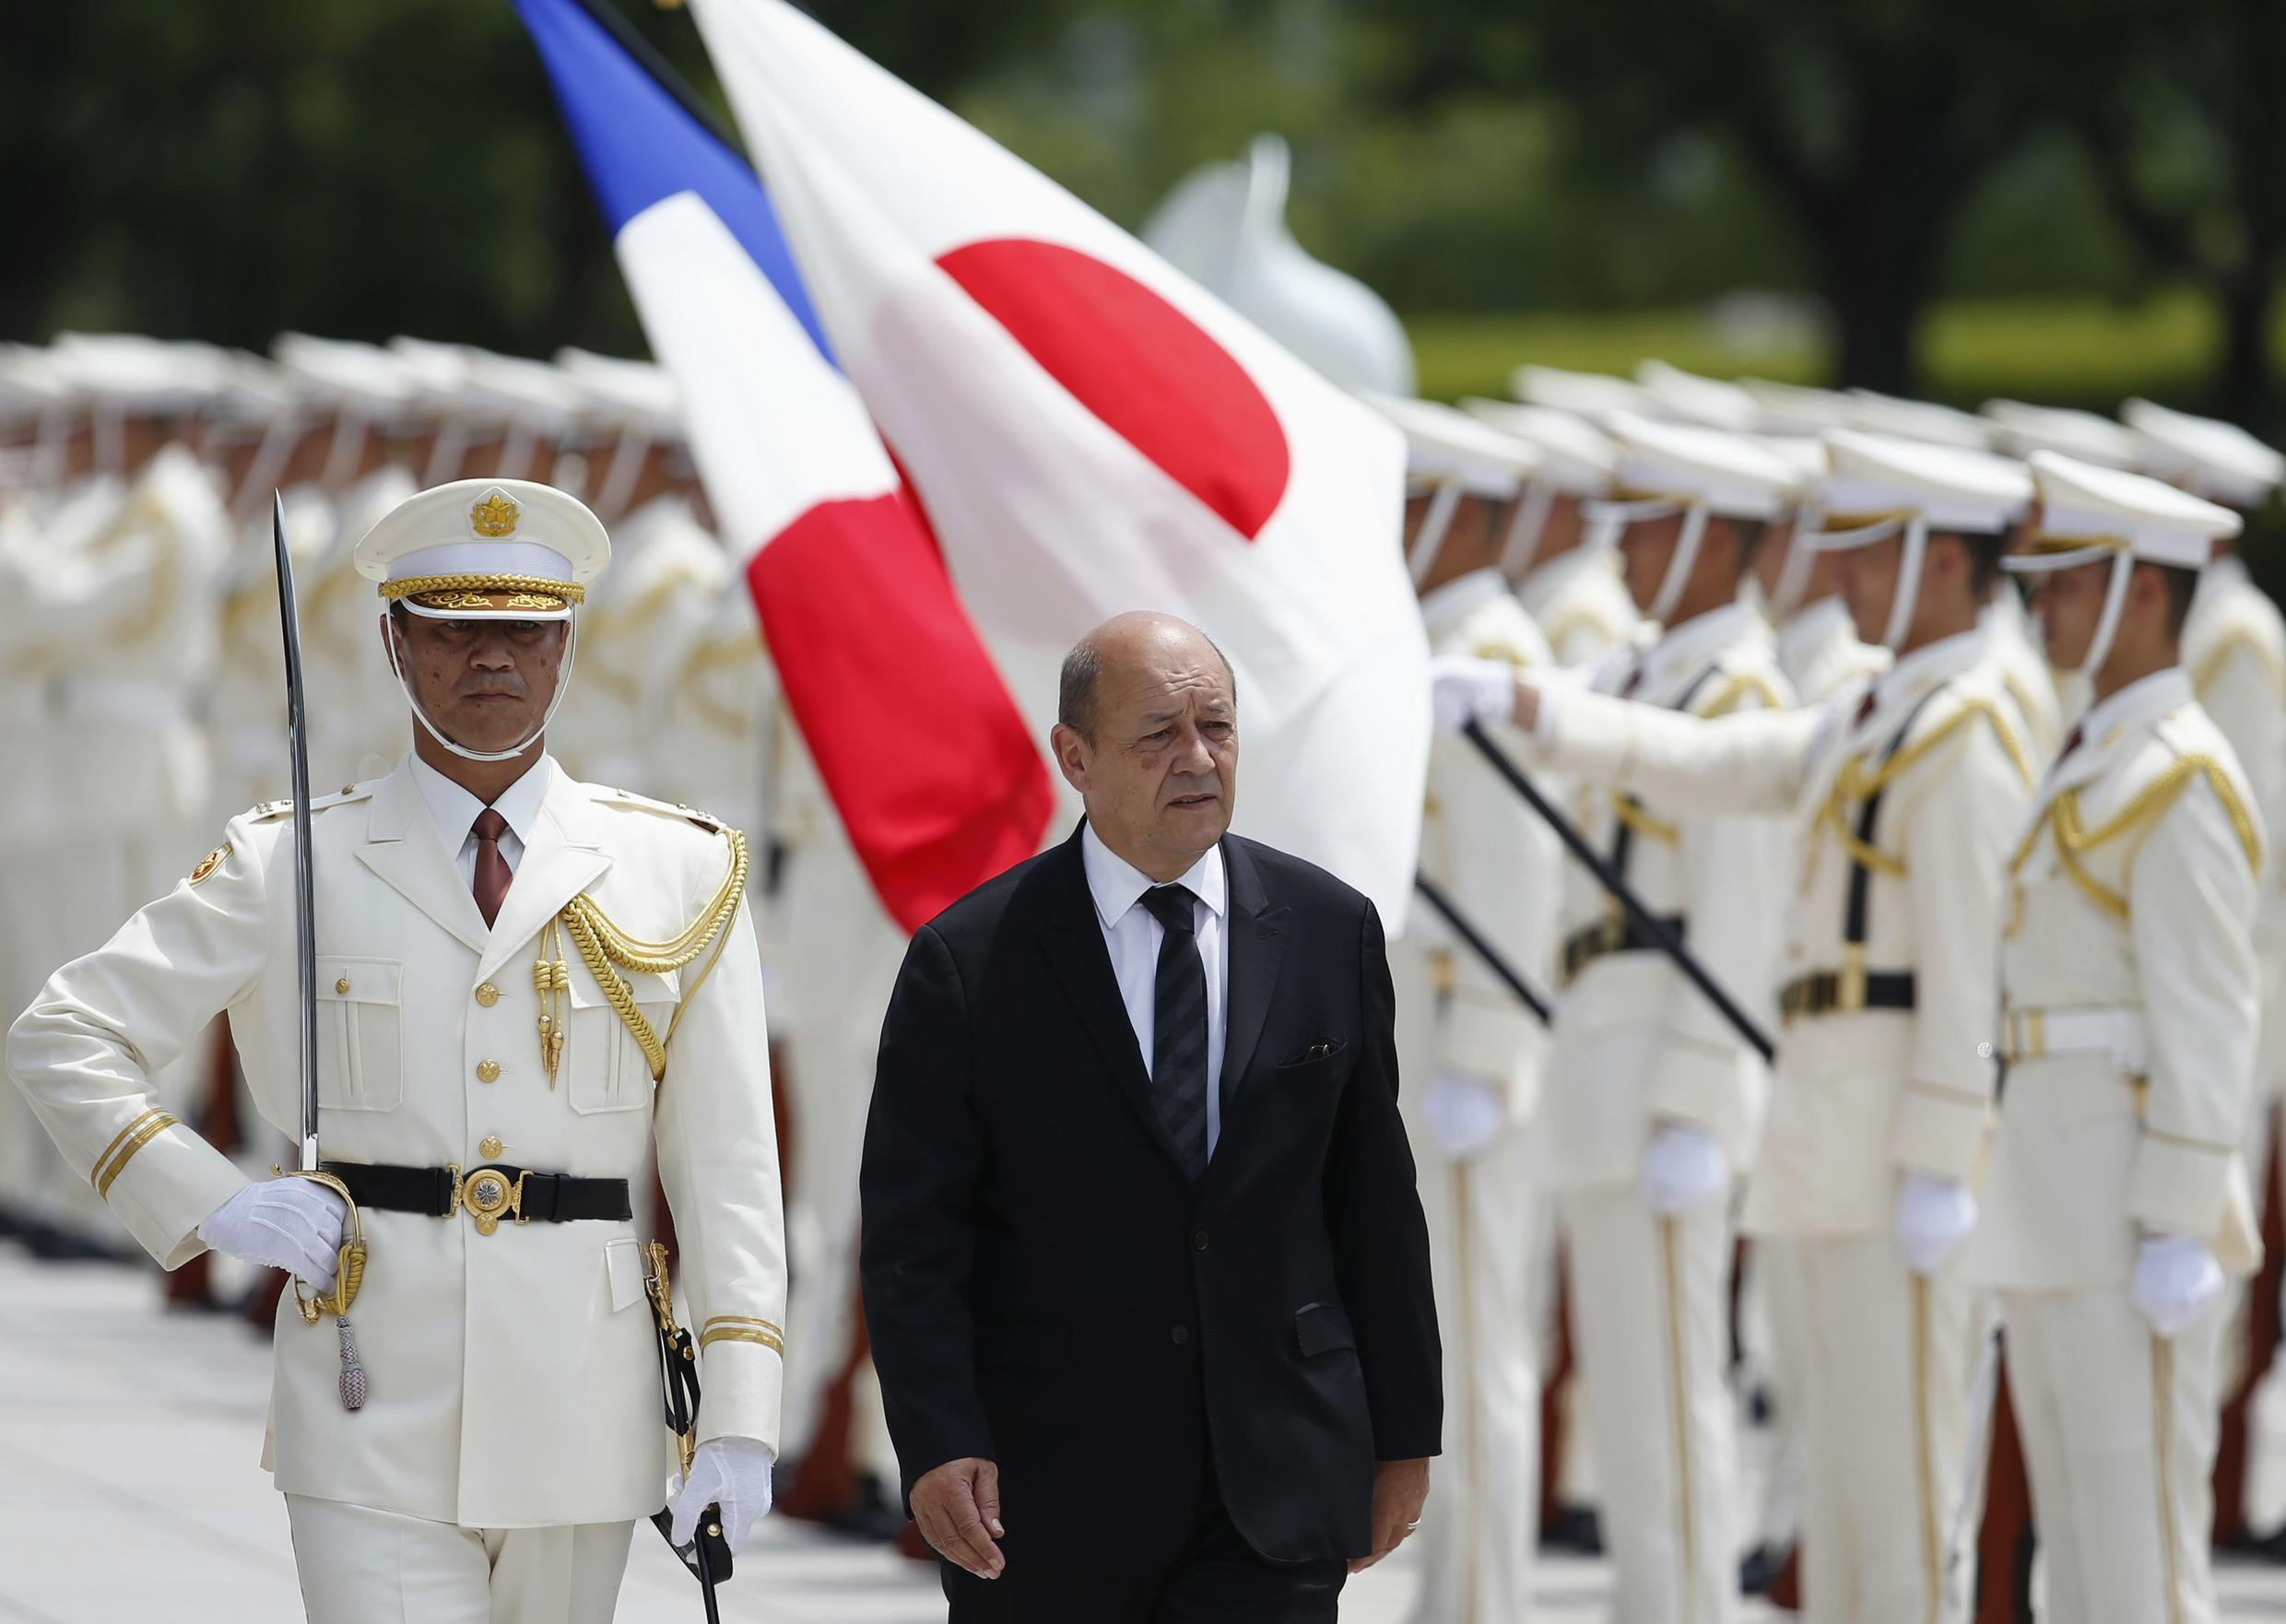 Operational troops will not be affected by the cuts, Defence Minister Jean-Yves Le Drian said on Wednesday